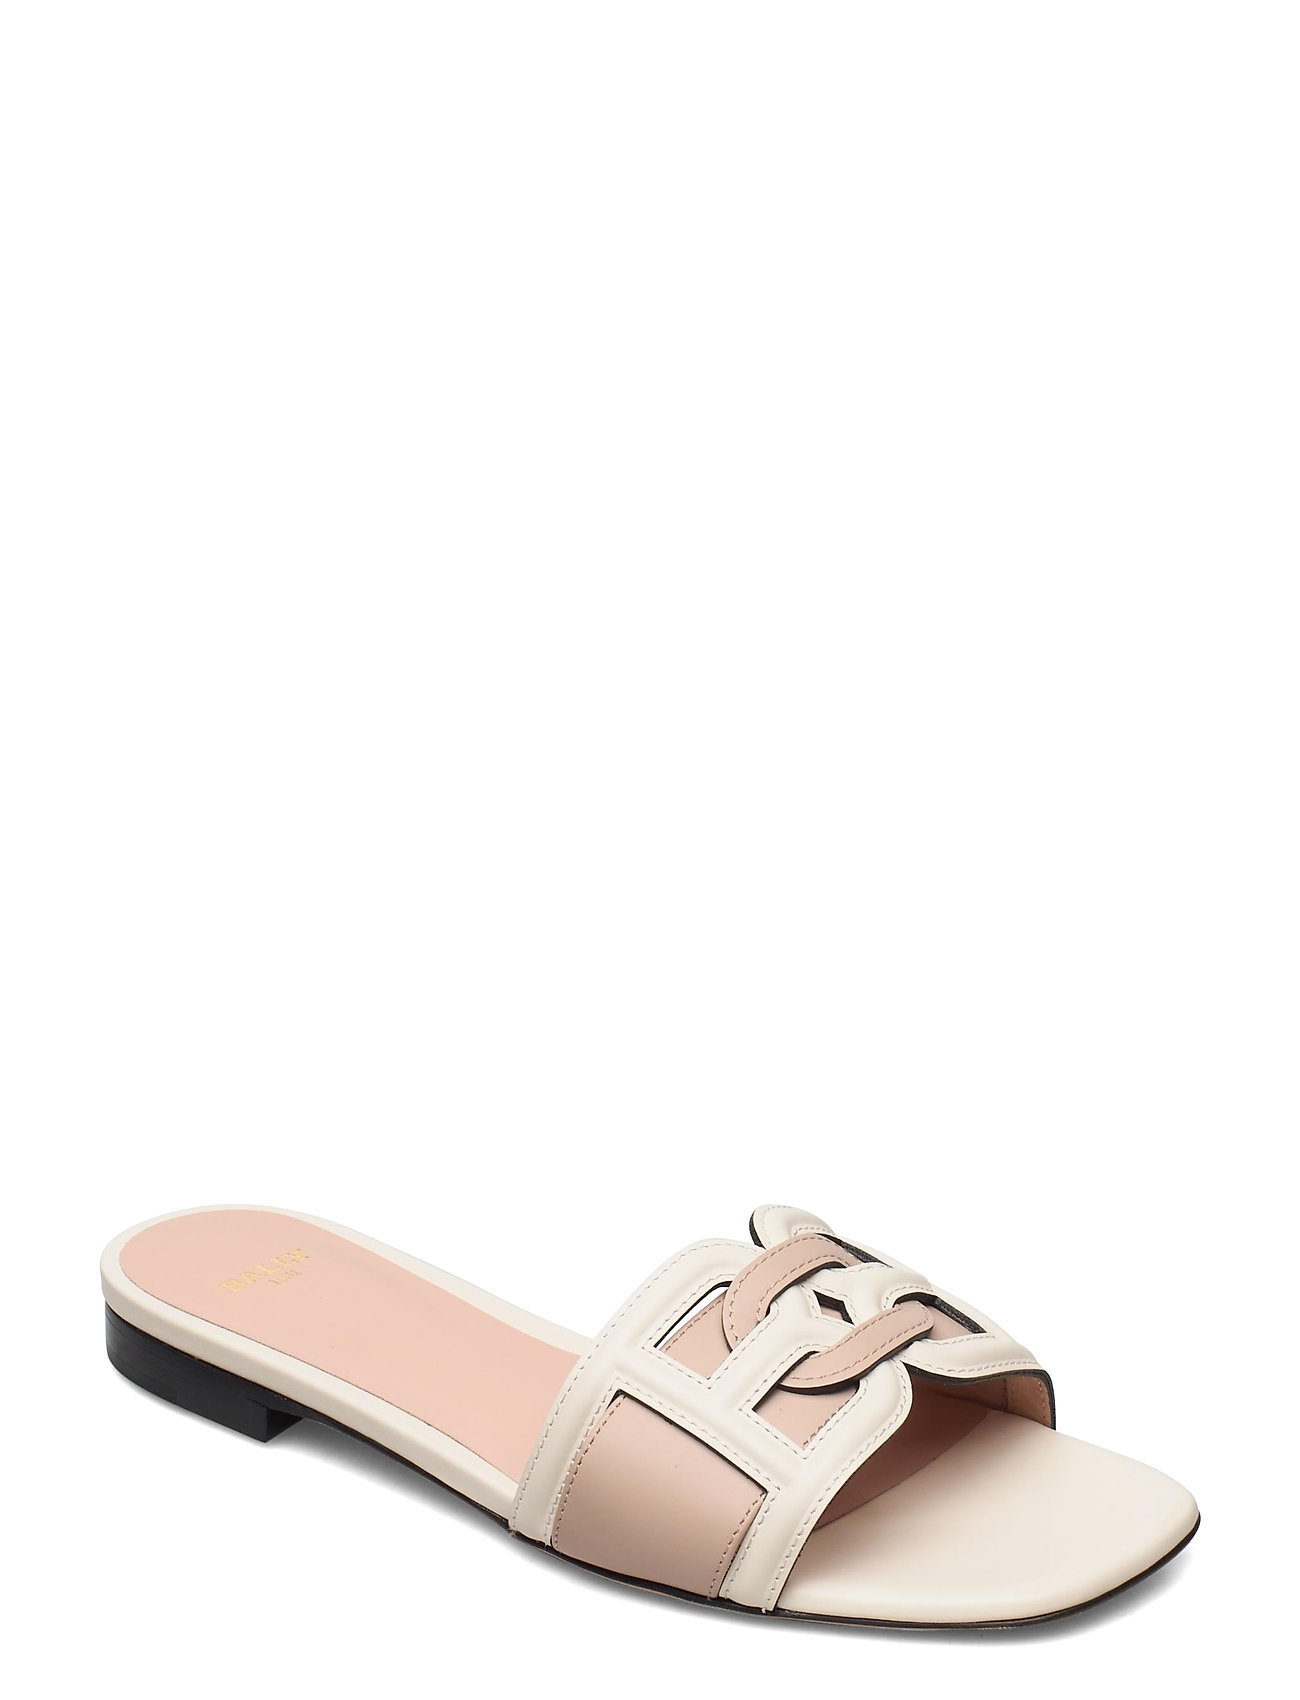 Image of Peoni Flat Shoes Summer Shoes Flat Sandals Creme Bally (3491148507)